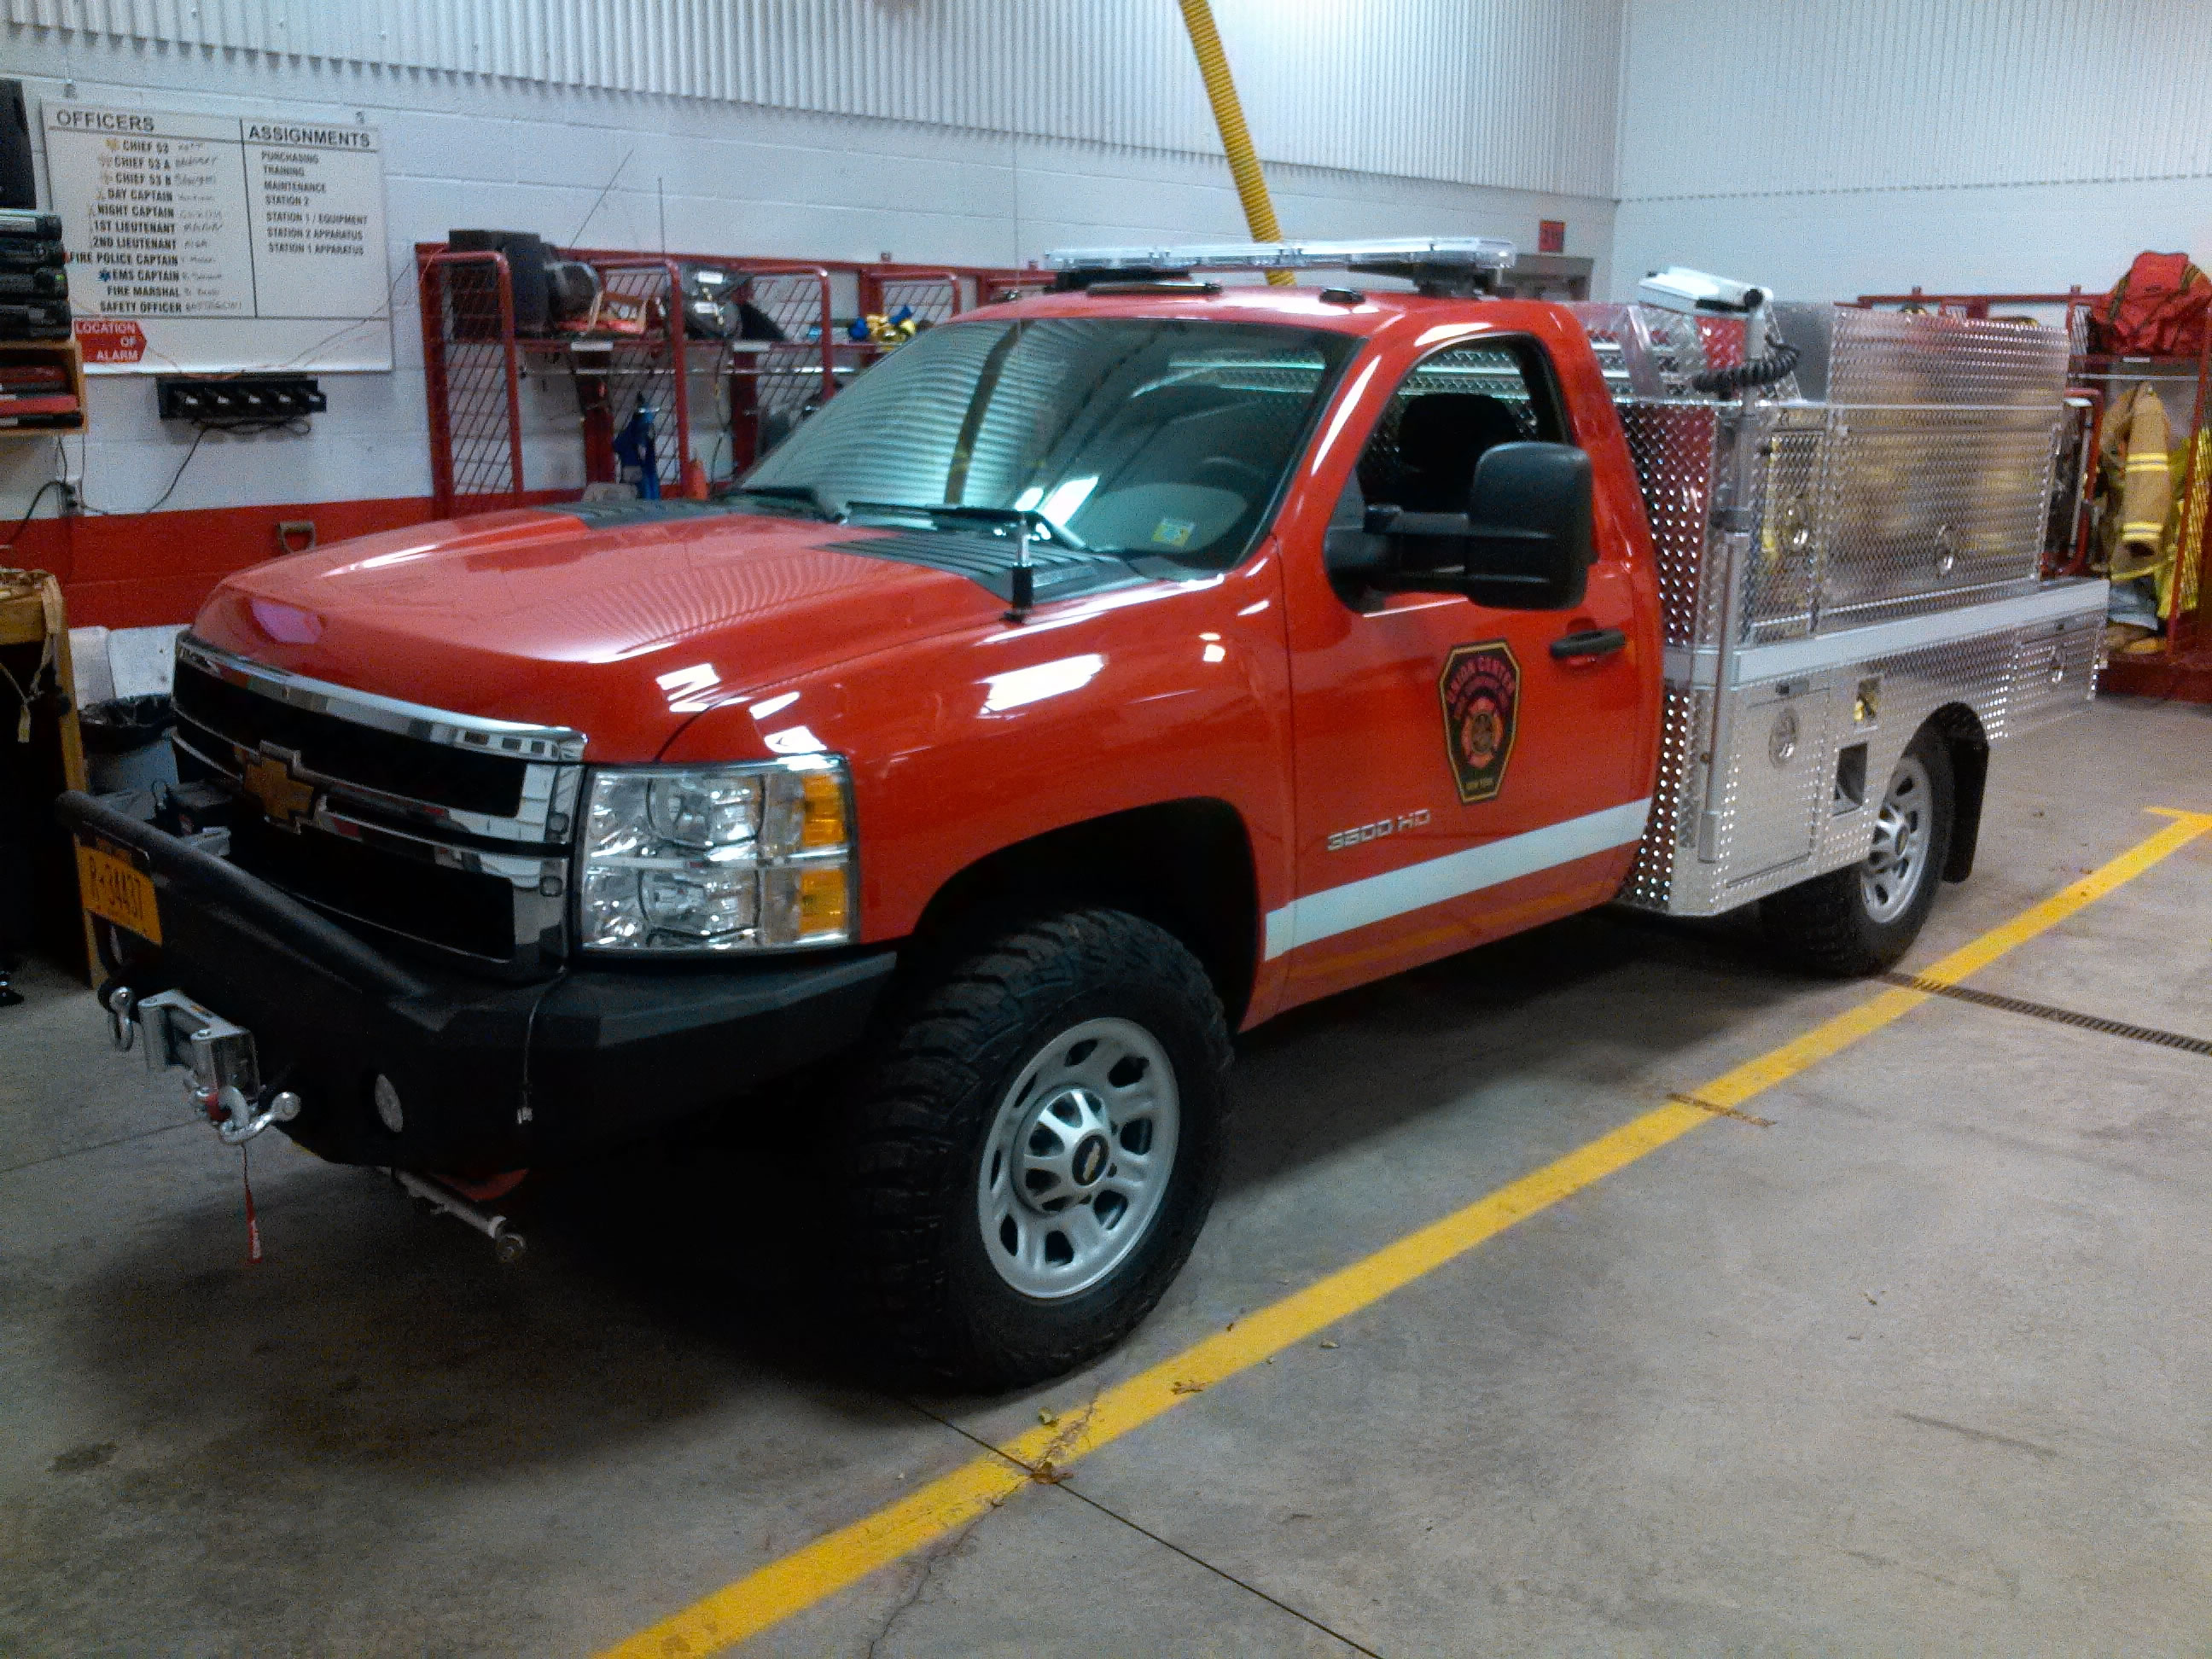 Union1 – Harrob Fire Apparatus